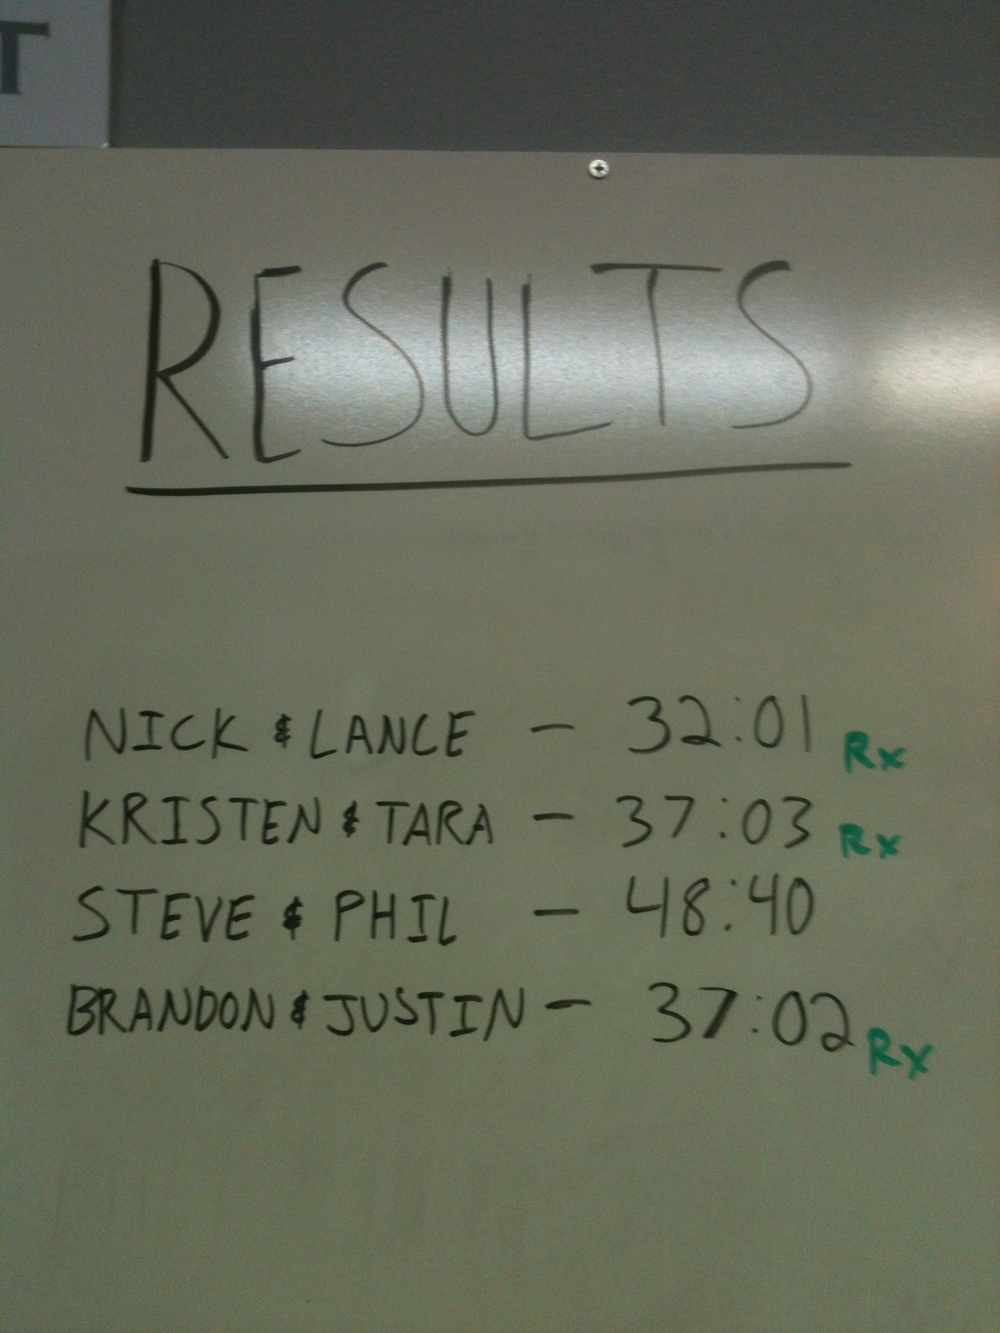 Class WOD times from 5/25